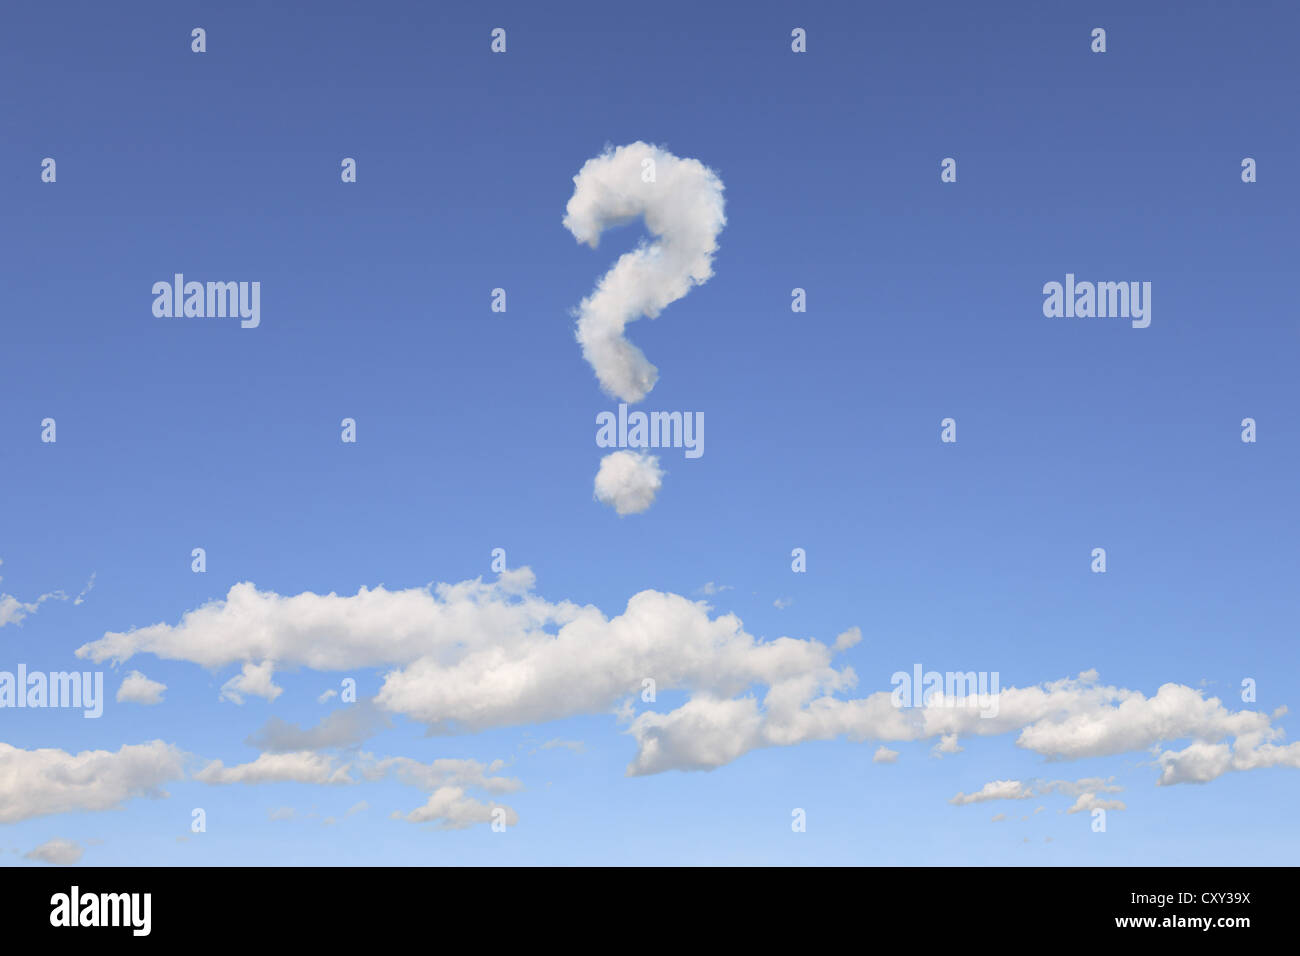 Cloud formations in the shape of a question mark, illustration - Stock Image